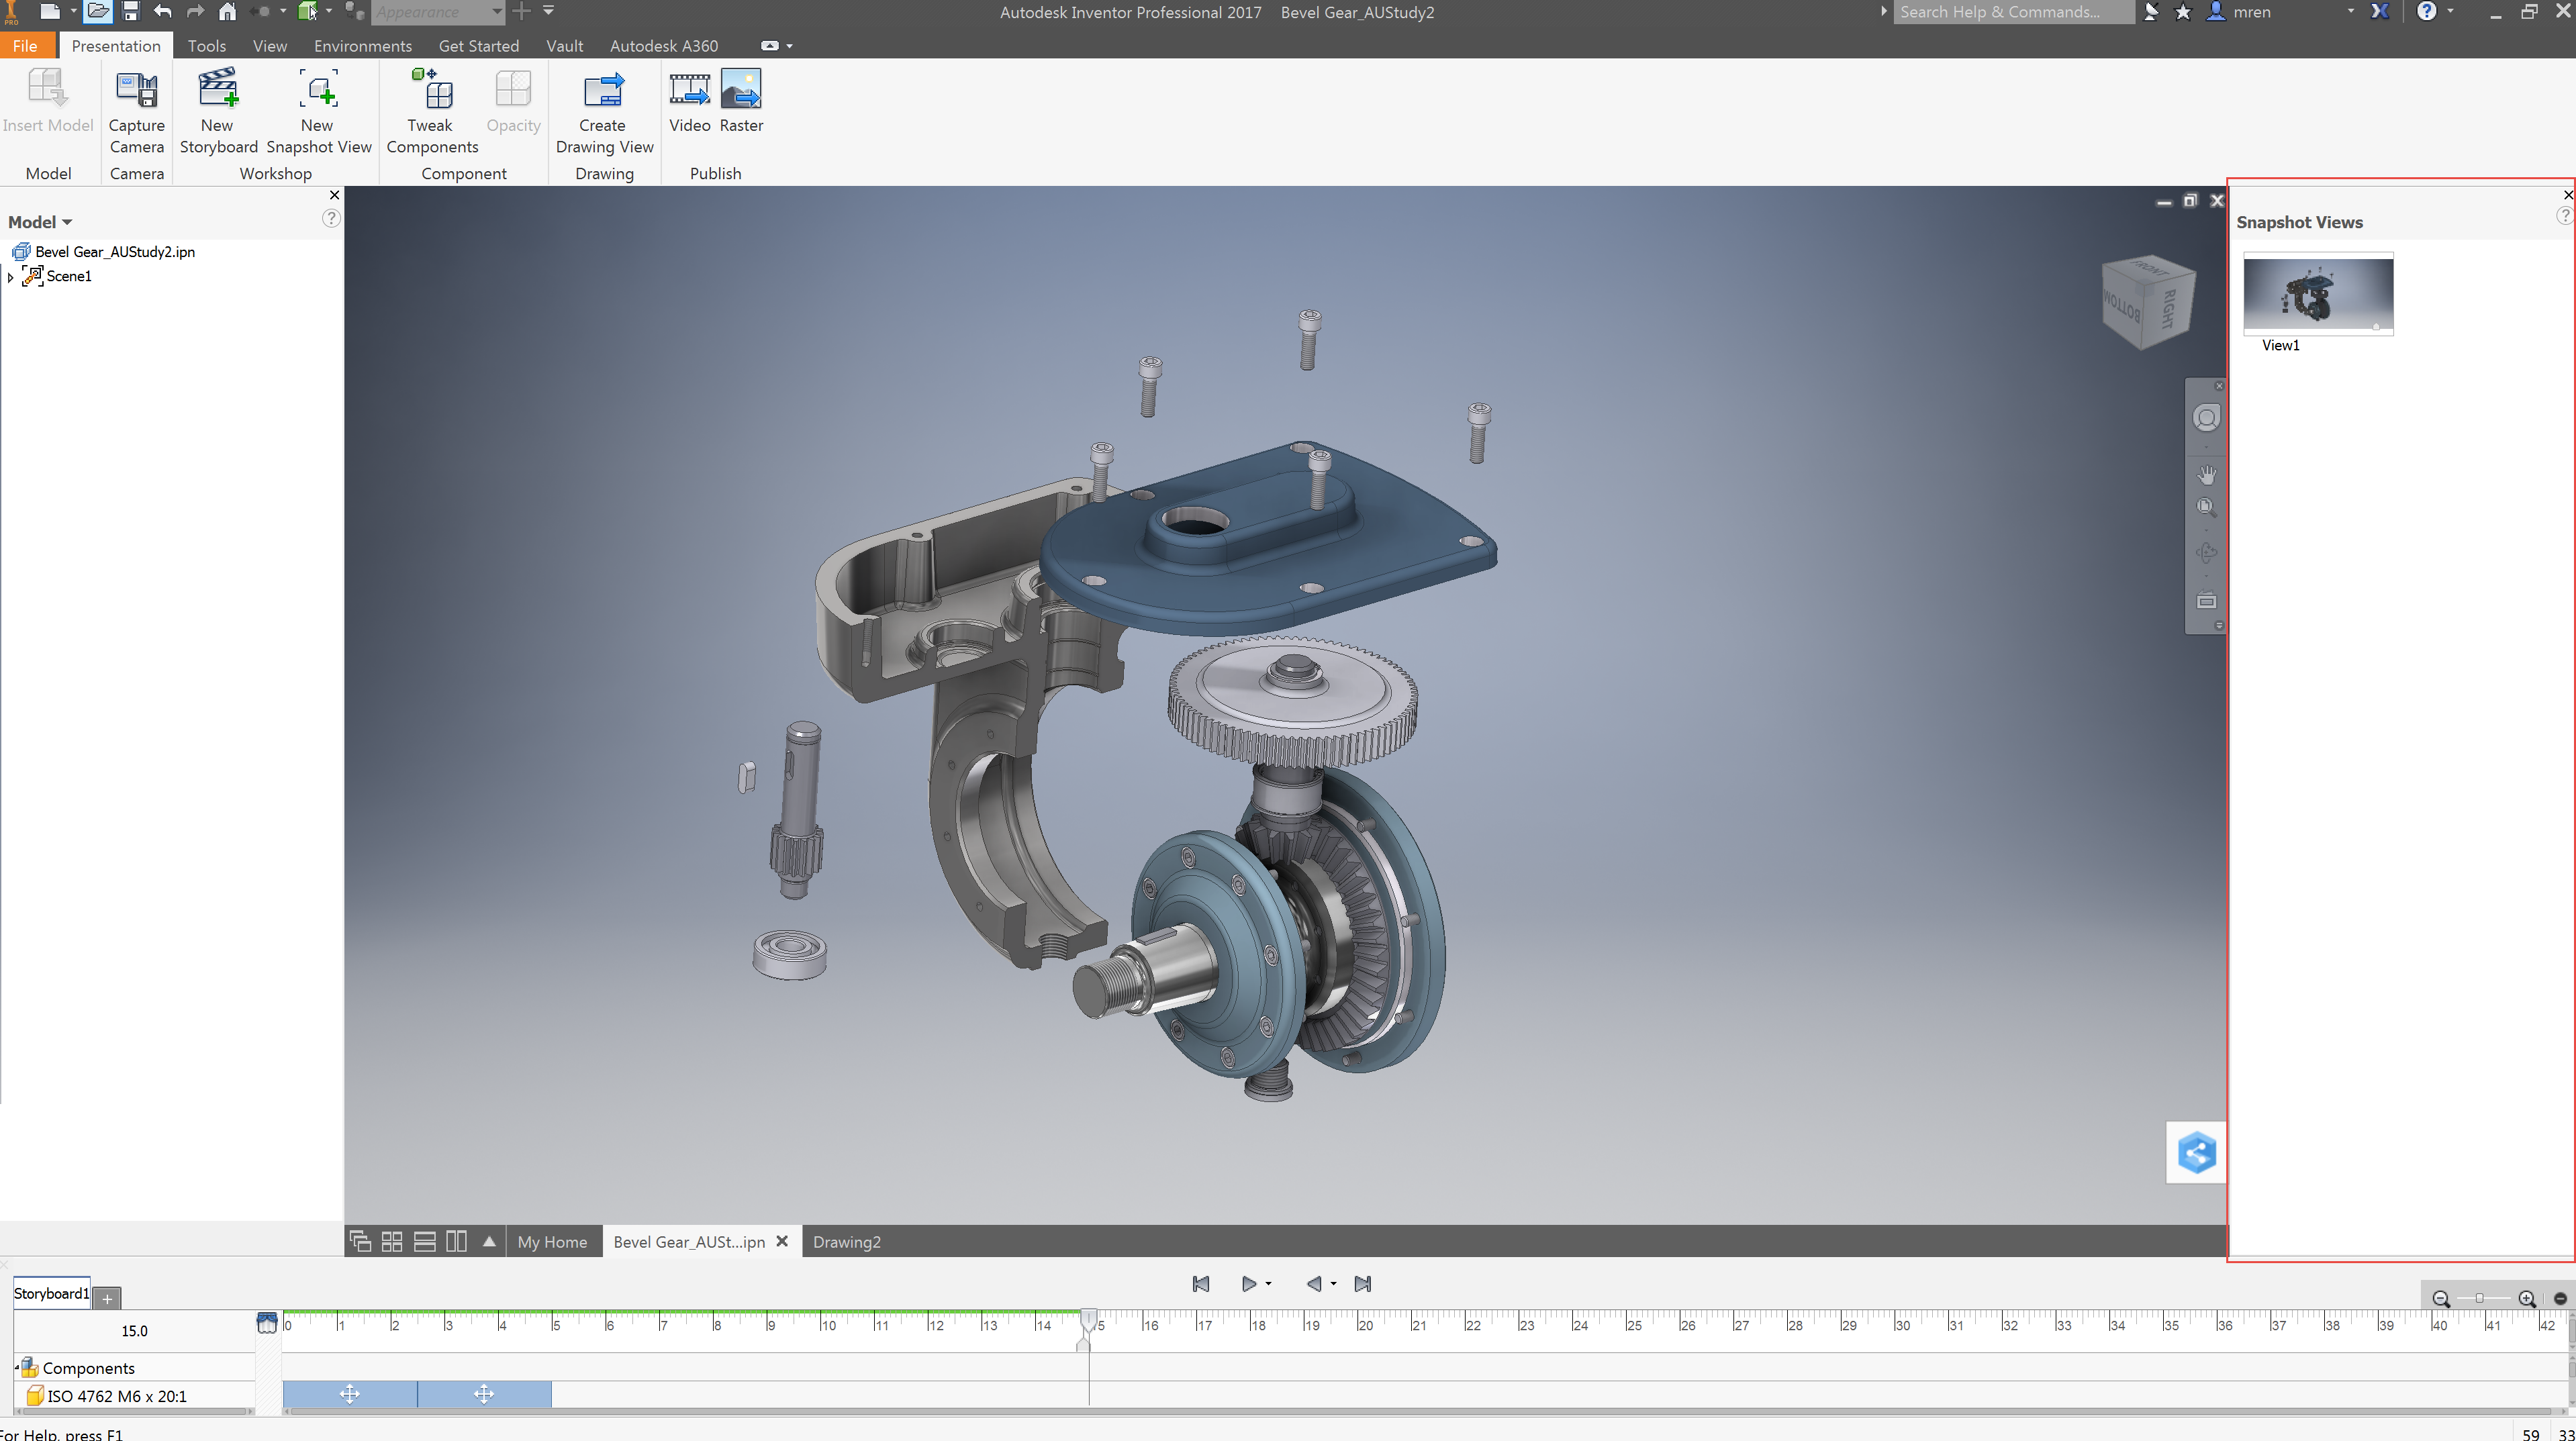 inventor 2017 presentation things i don t like autodesk rh forums autodesk com autodesk inventor 2018 presentation tutorial autodesk inventor 2018 presentation tutorial